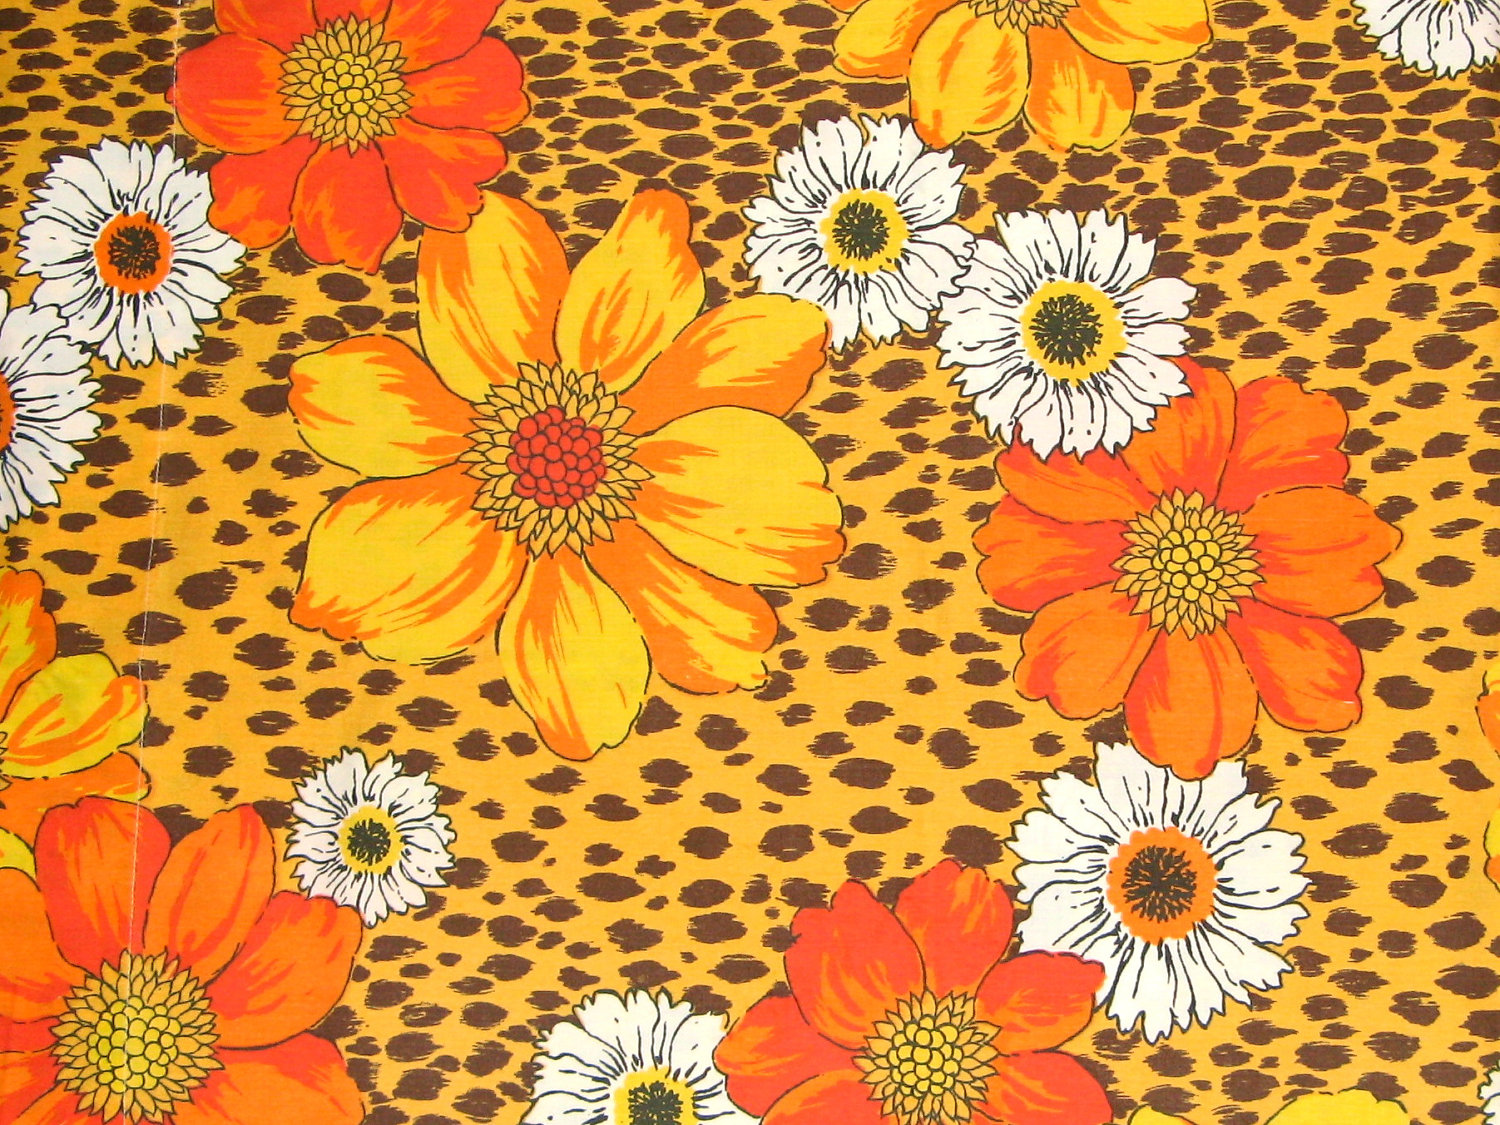 Free Download 60s Flower Power Background 60s70s Flower Power